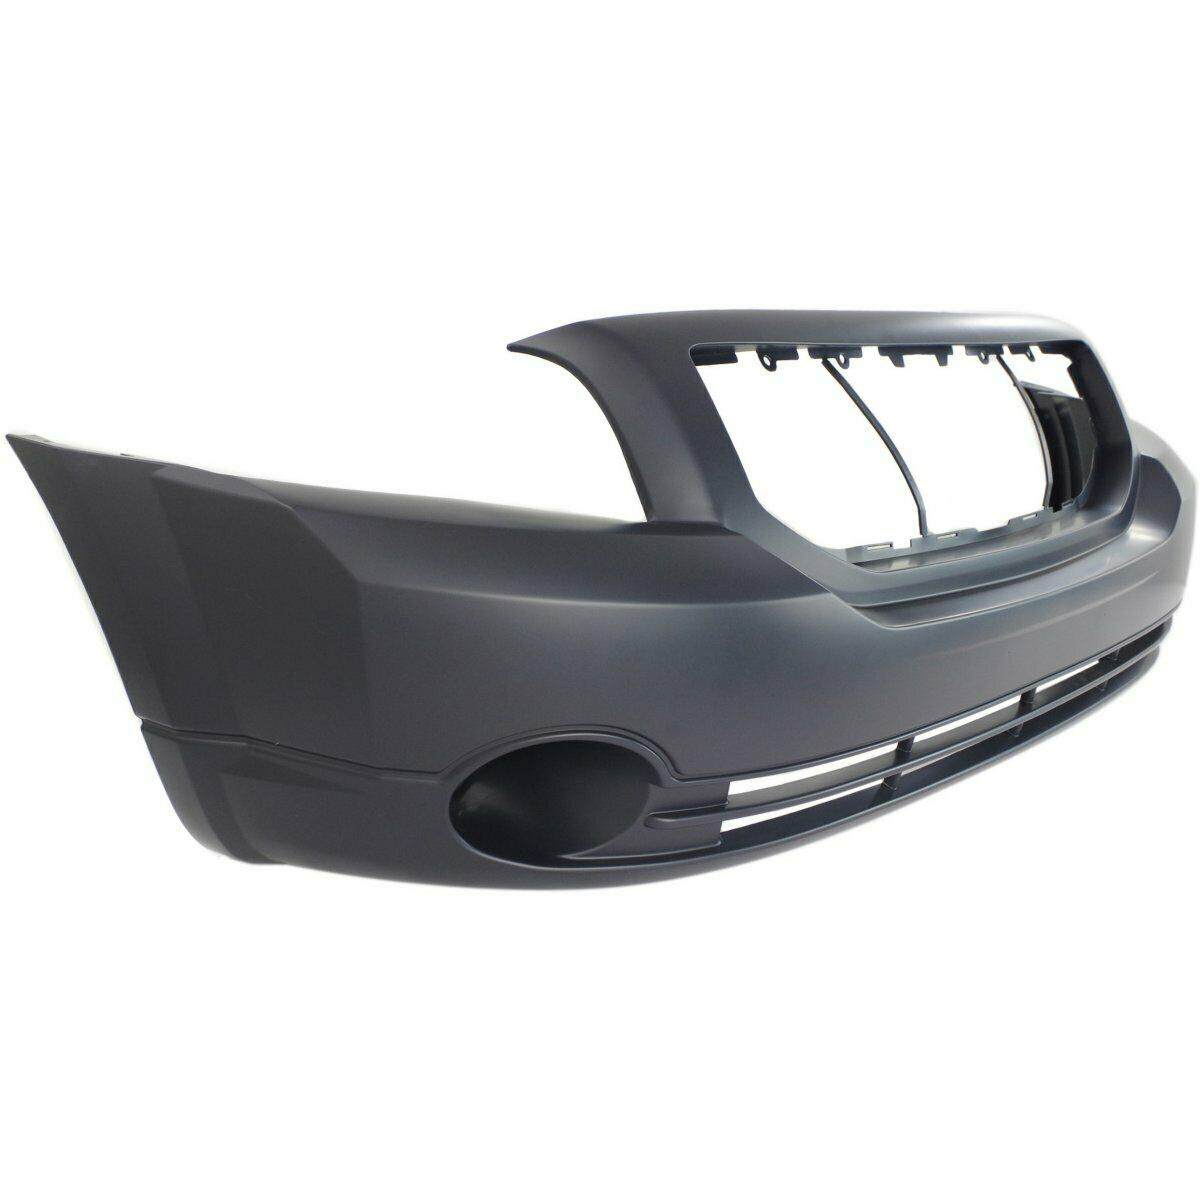 2007-2011 Dodge Caliber (Fog) Front Bumper Painted to Match